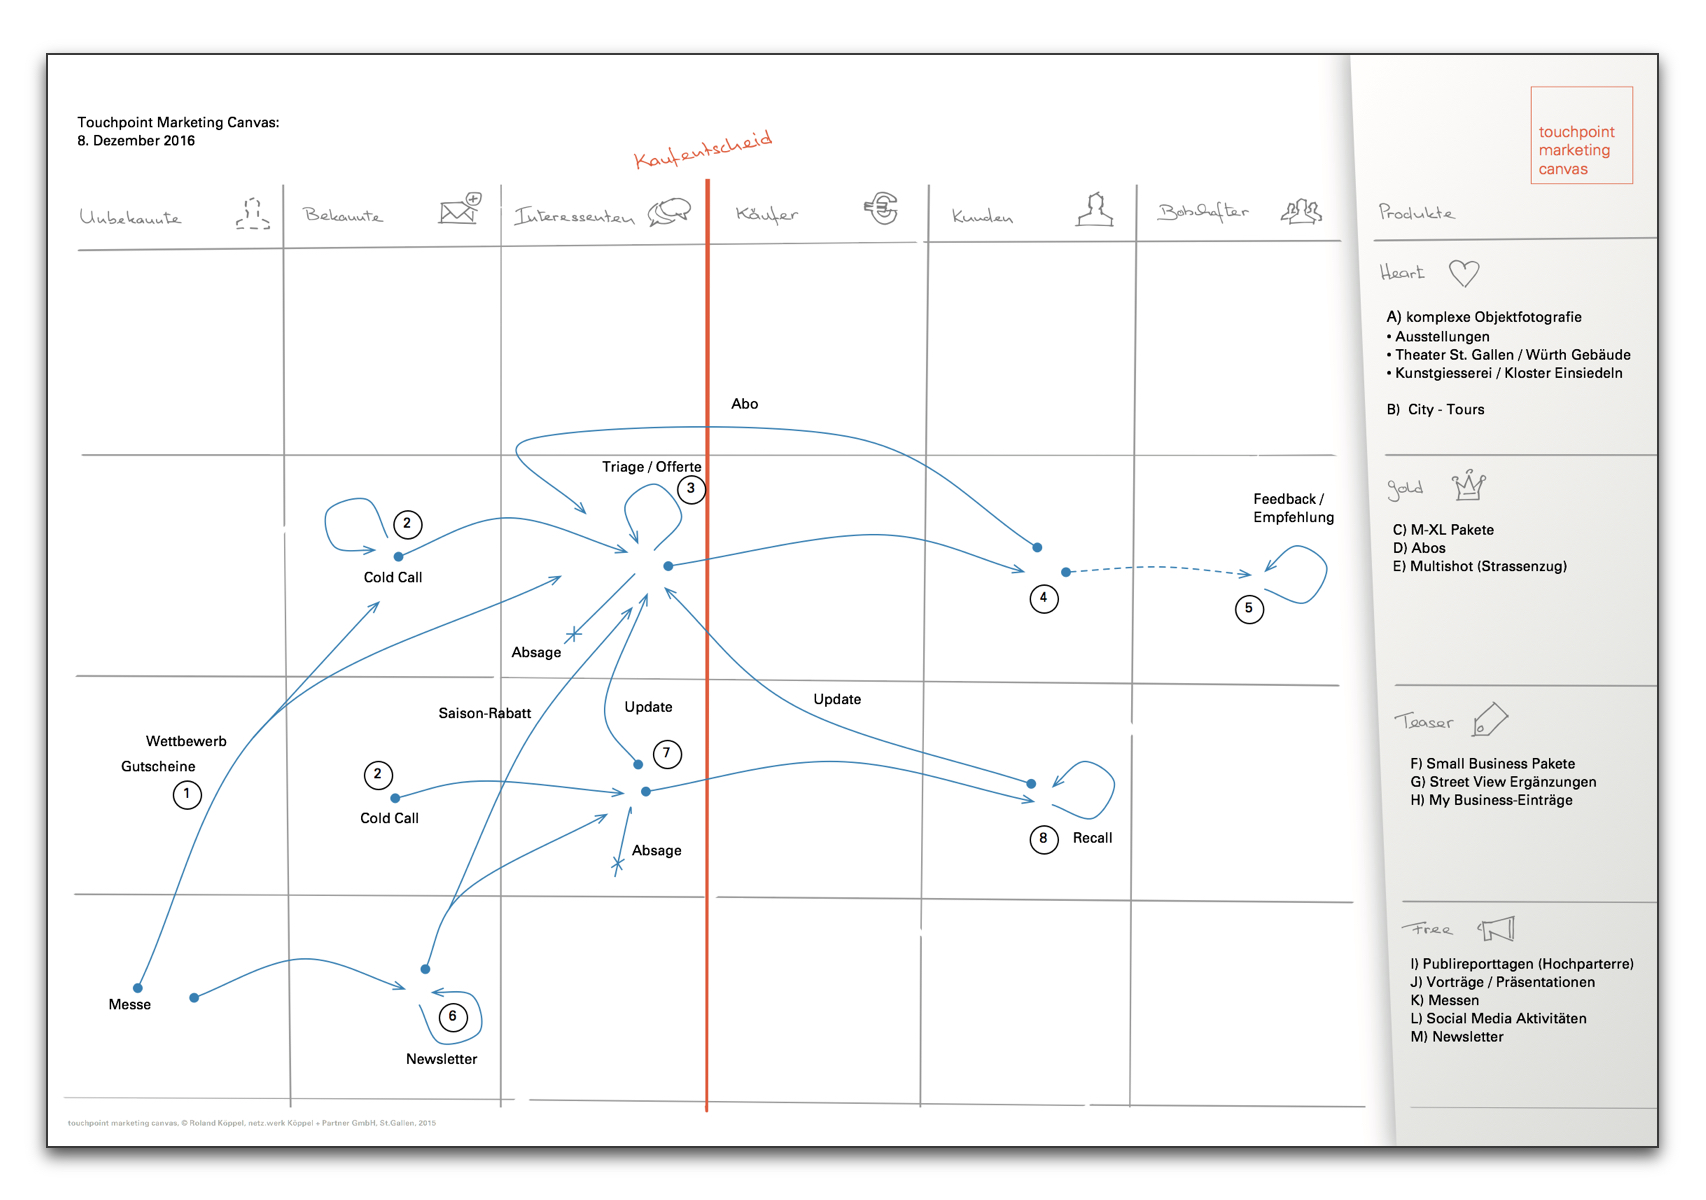 Online Marketing Plan visuell dargestellt mit dem Touchpoint Marketing Canvas